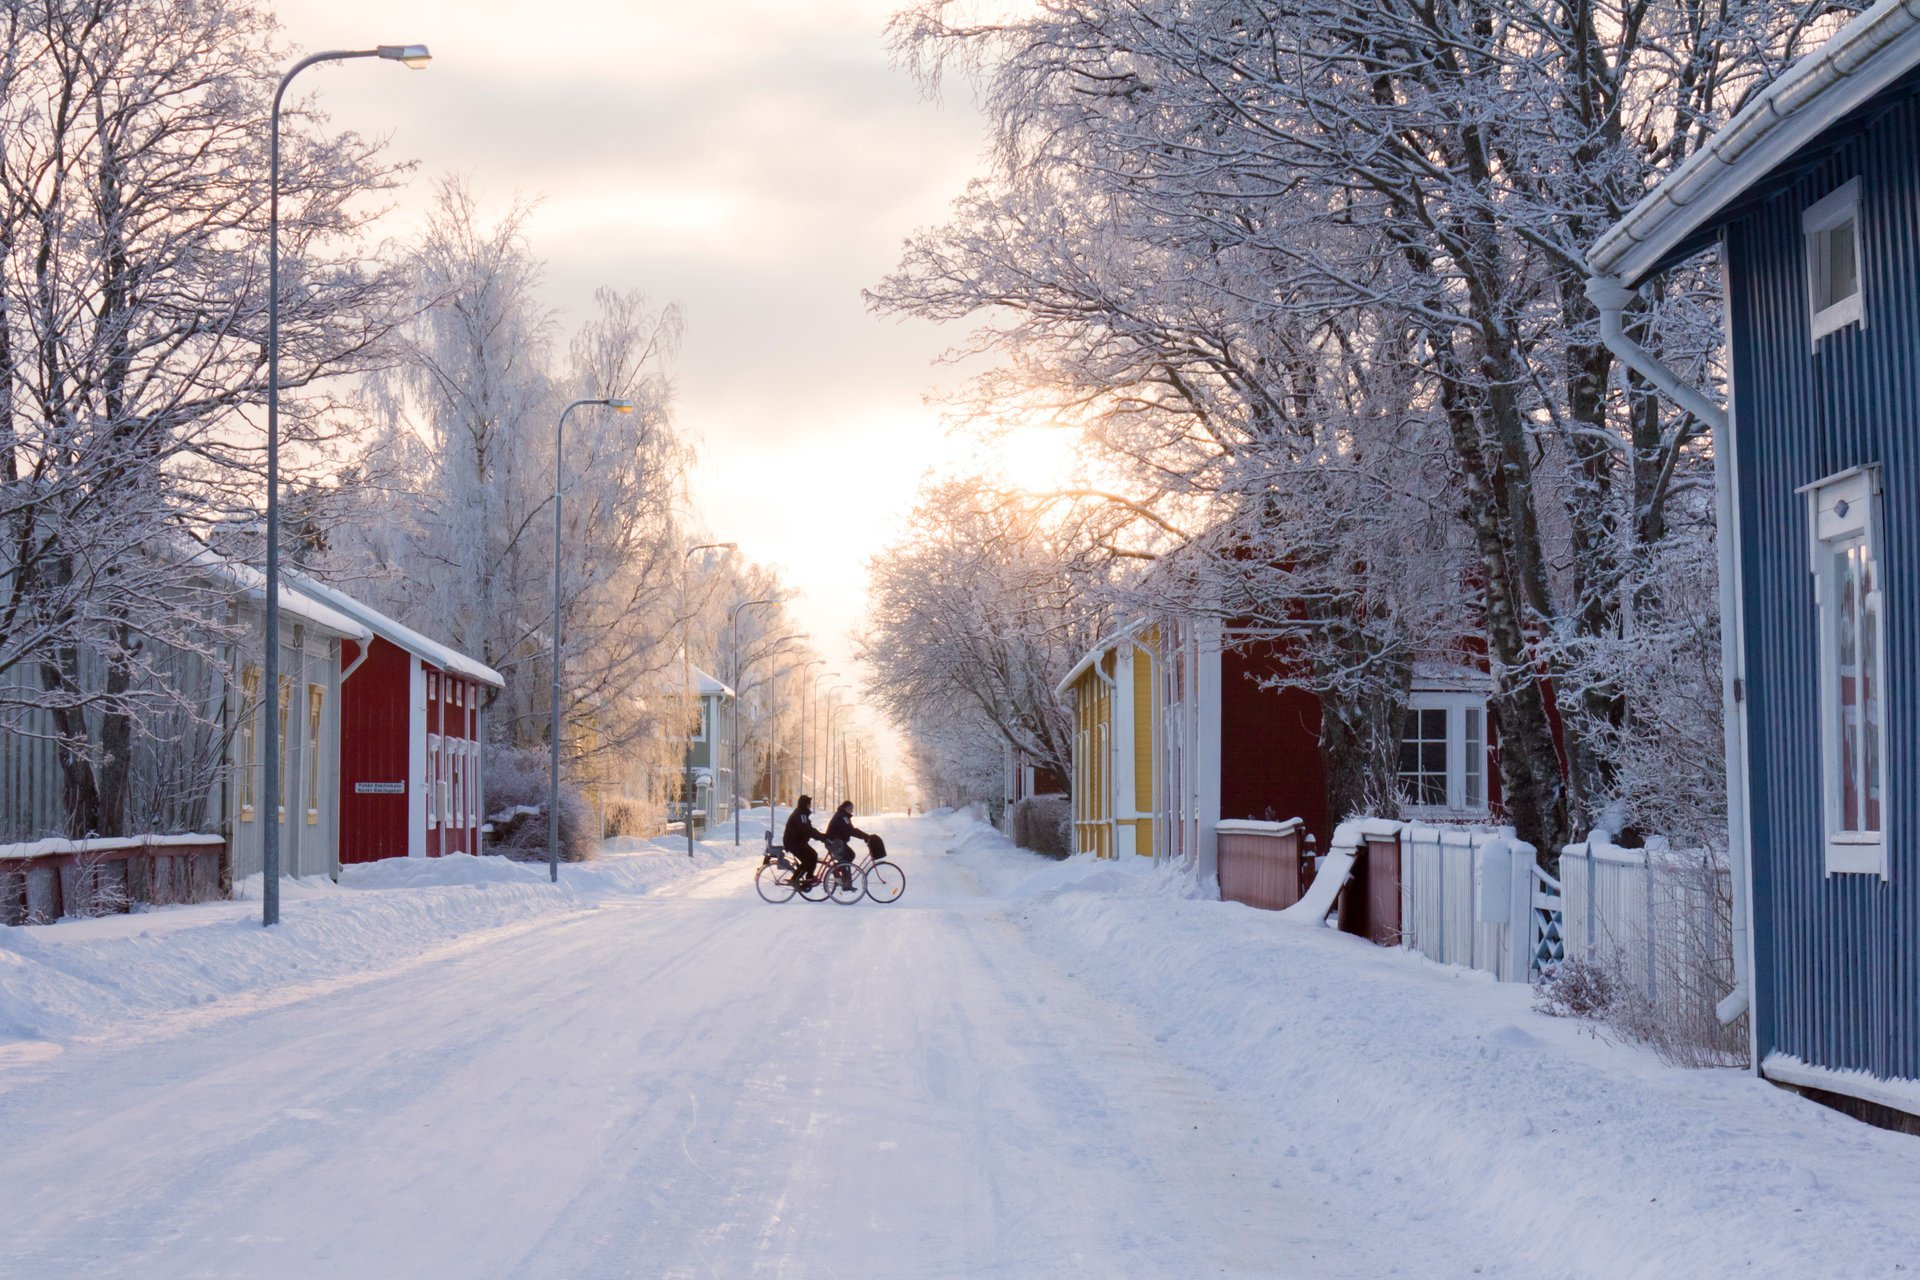 Winter in Finland 2020 - Best Time